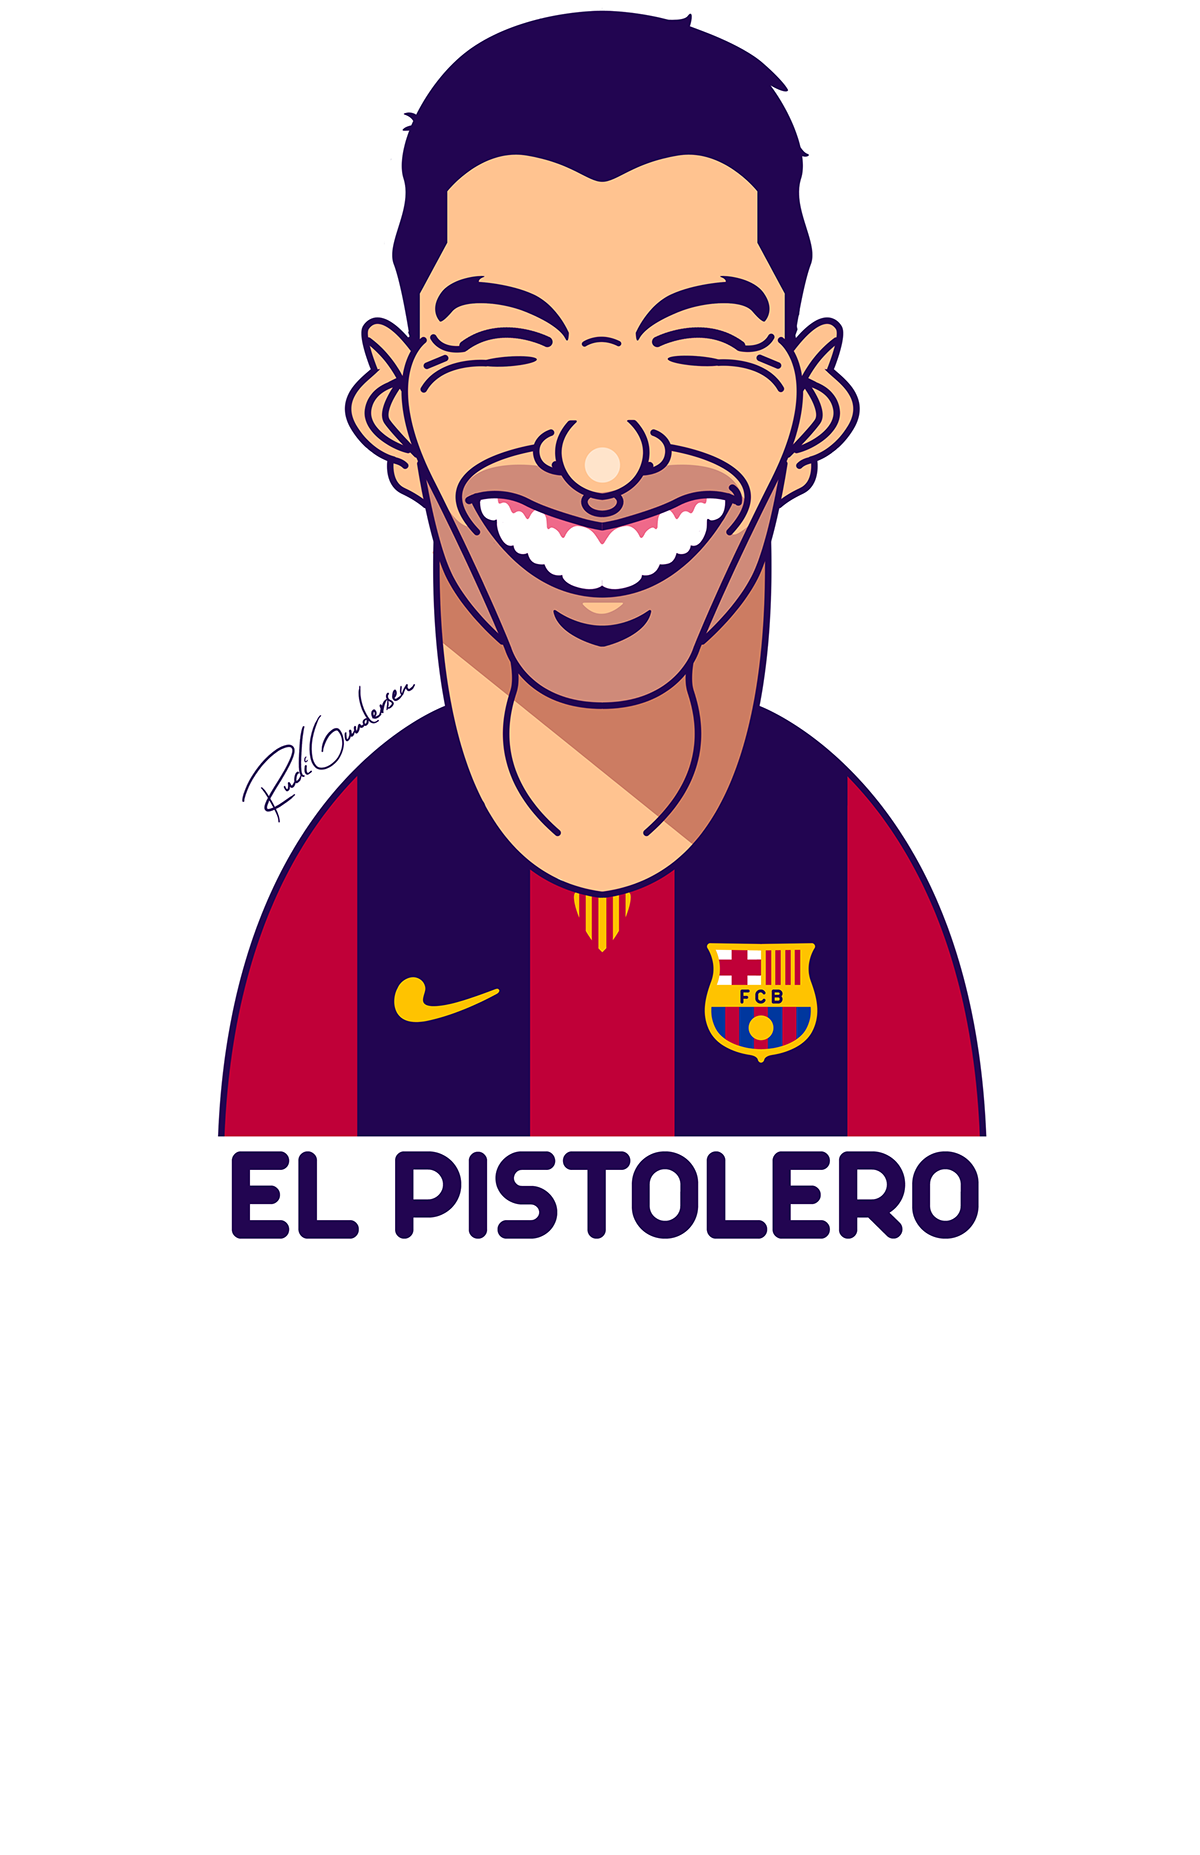 Funny face football clipart picture freeuse stock El Pistolero Luis Suárez caricatura | Football Wallpaper | Pinterest ... picture freeuse stock